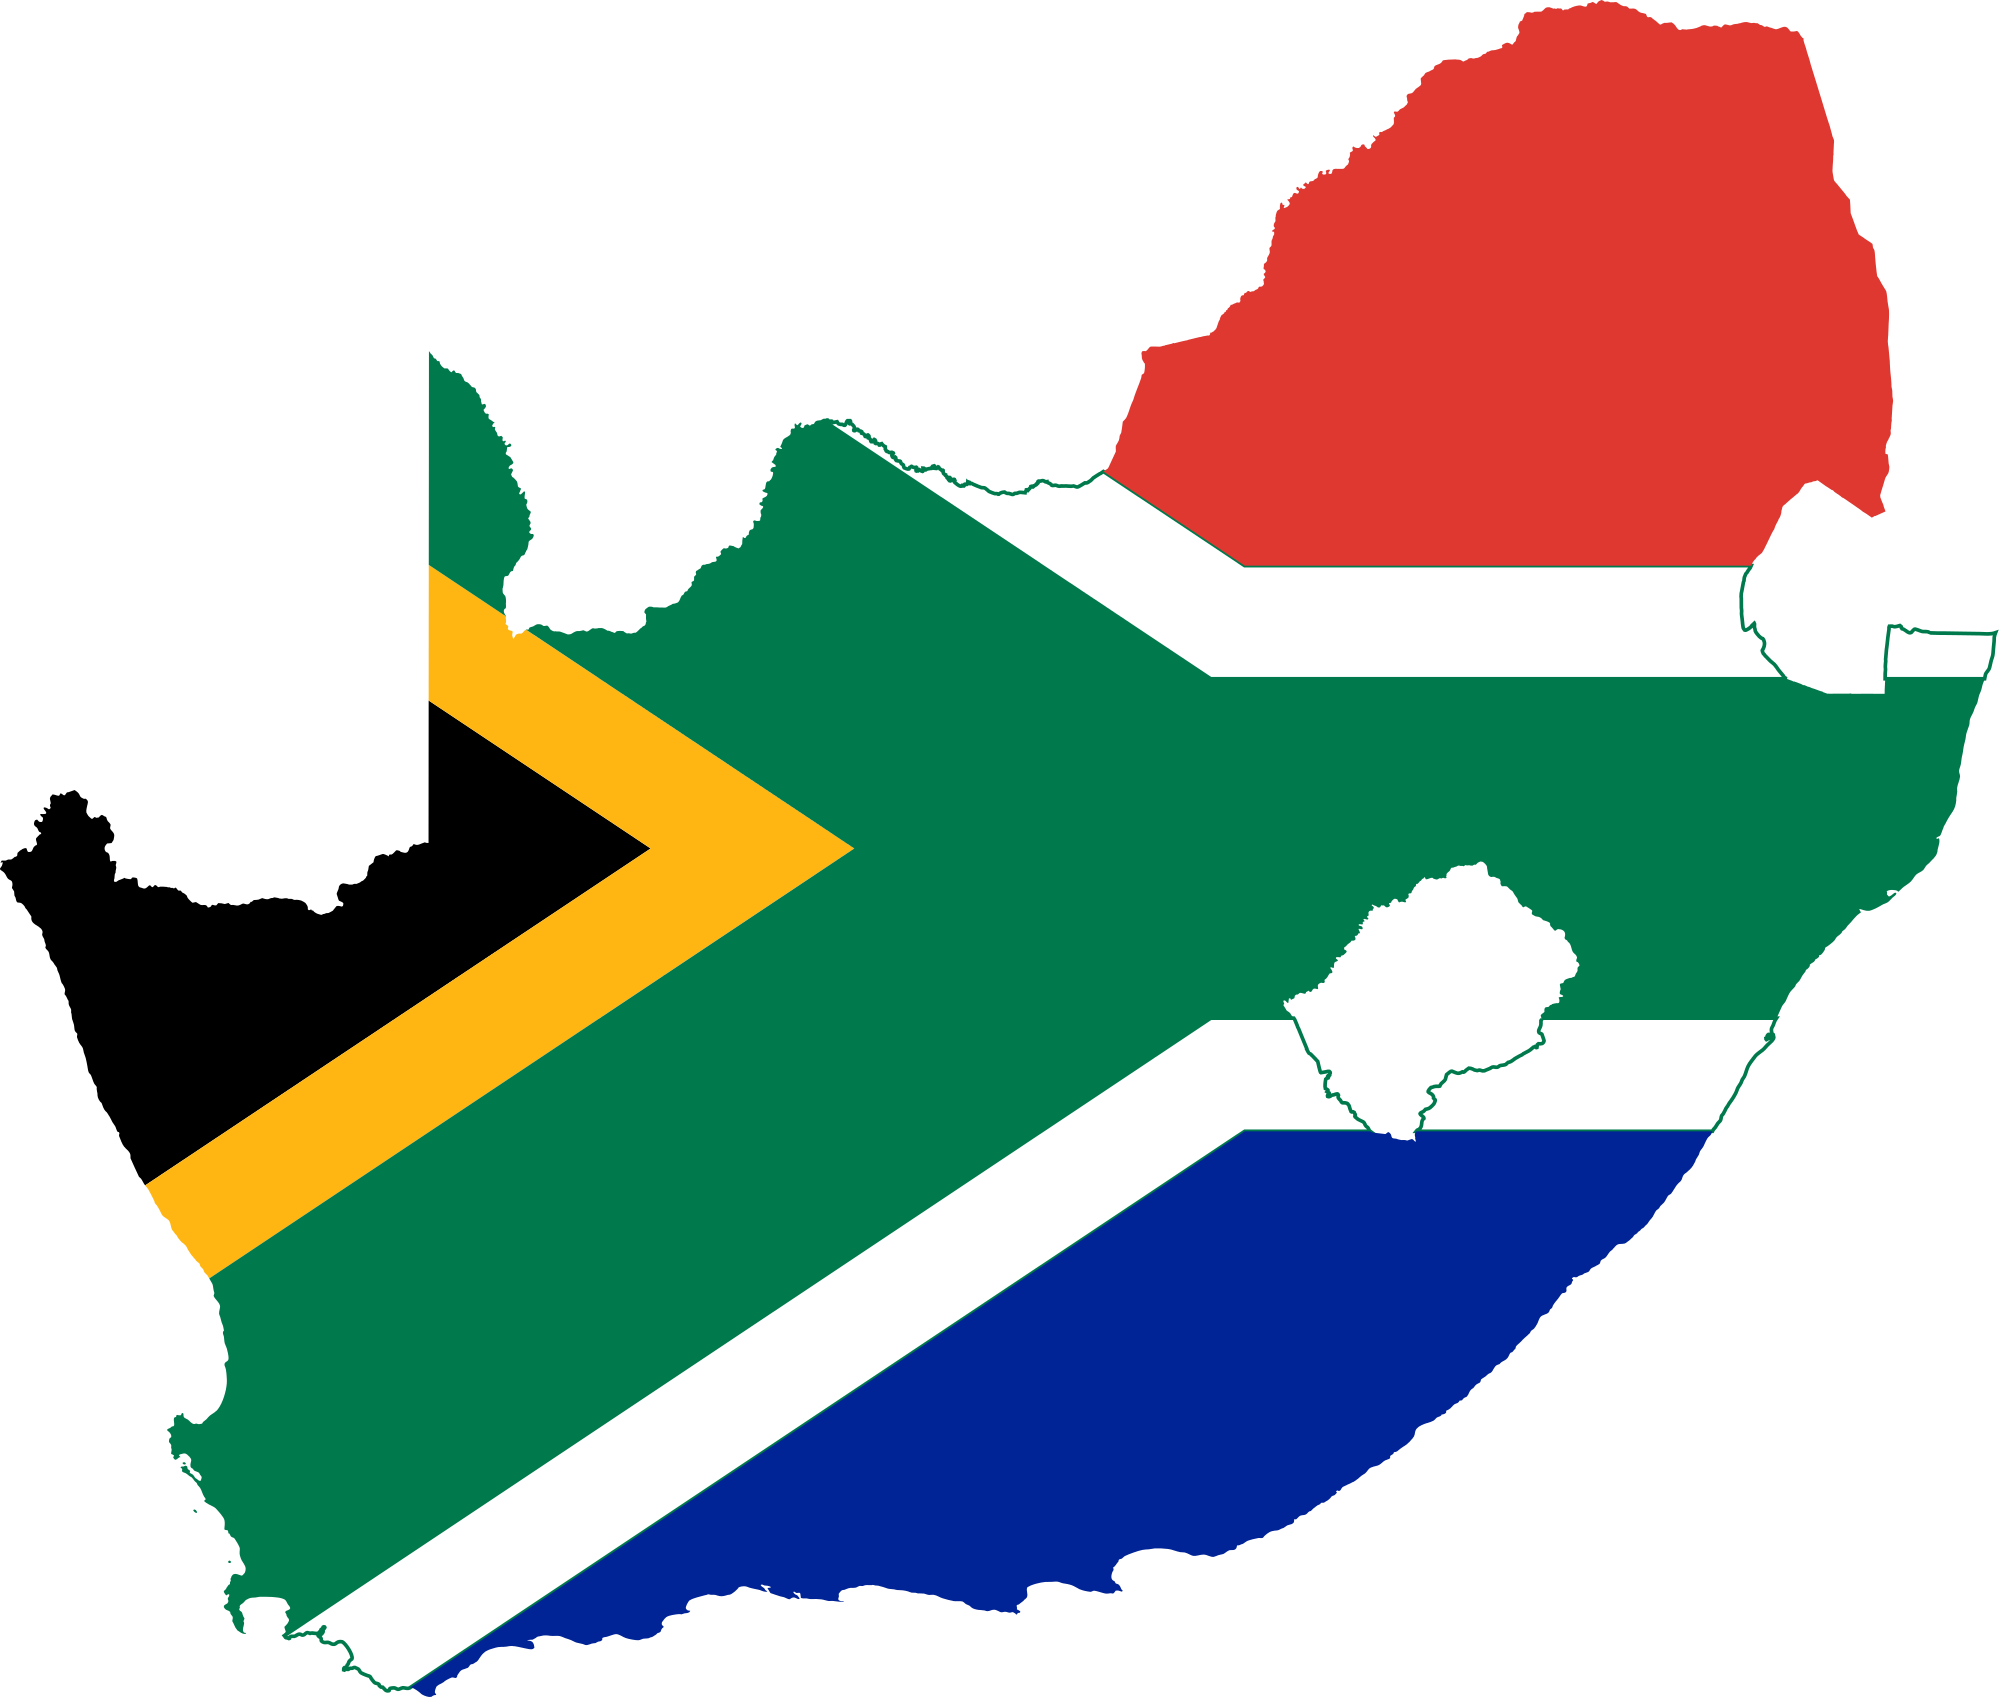 South Africa. African world firsts